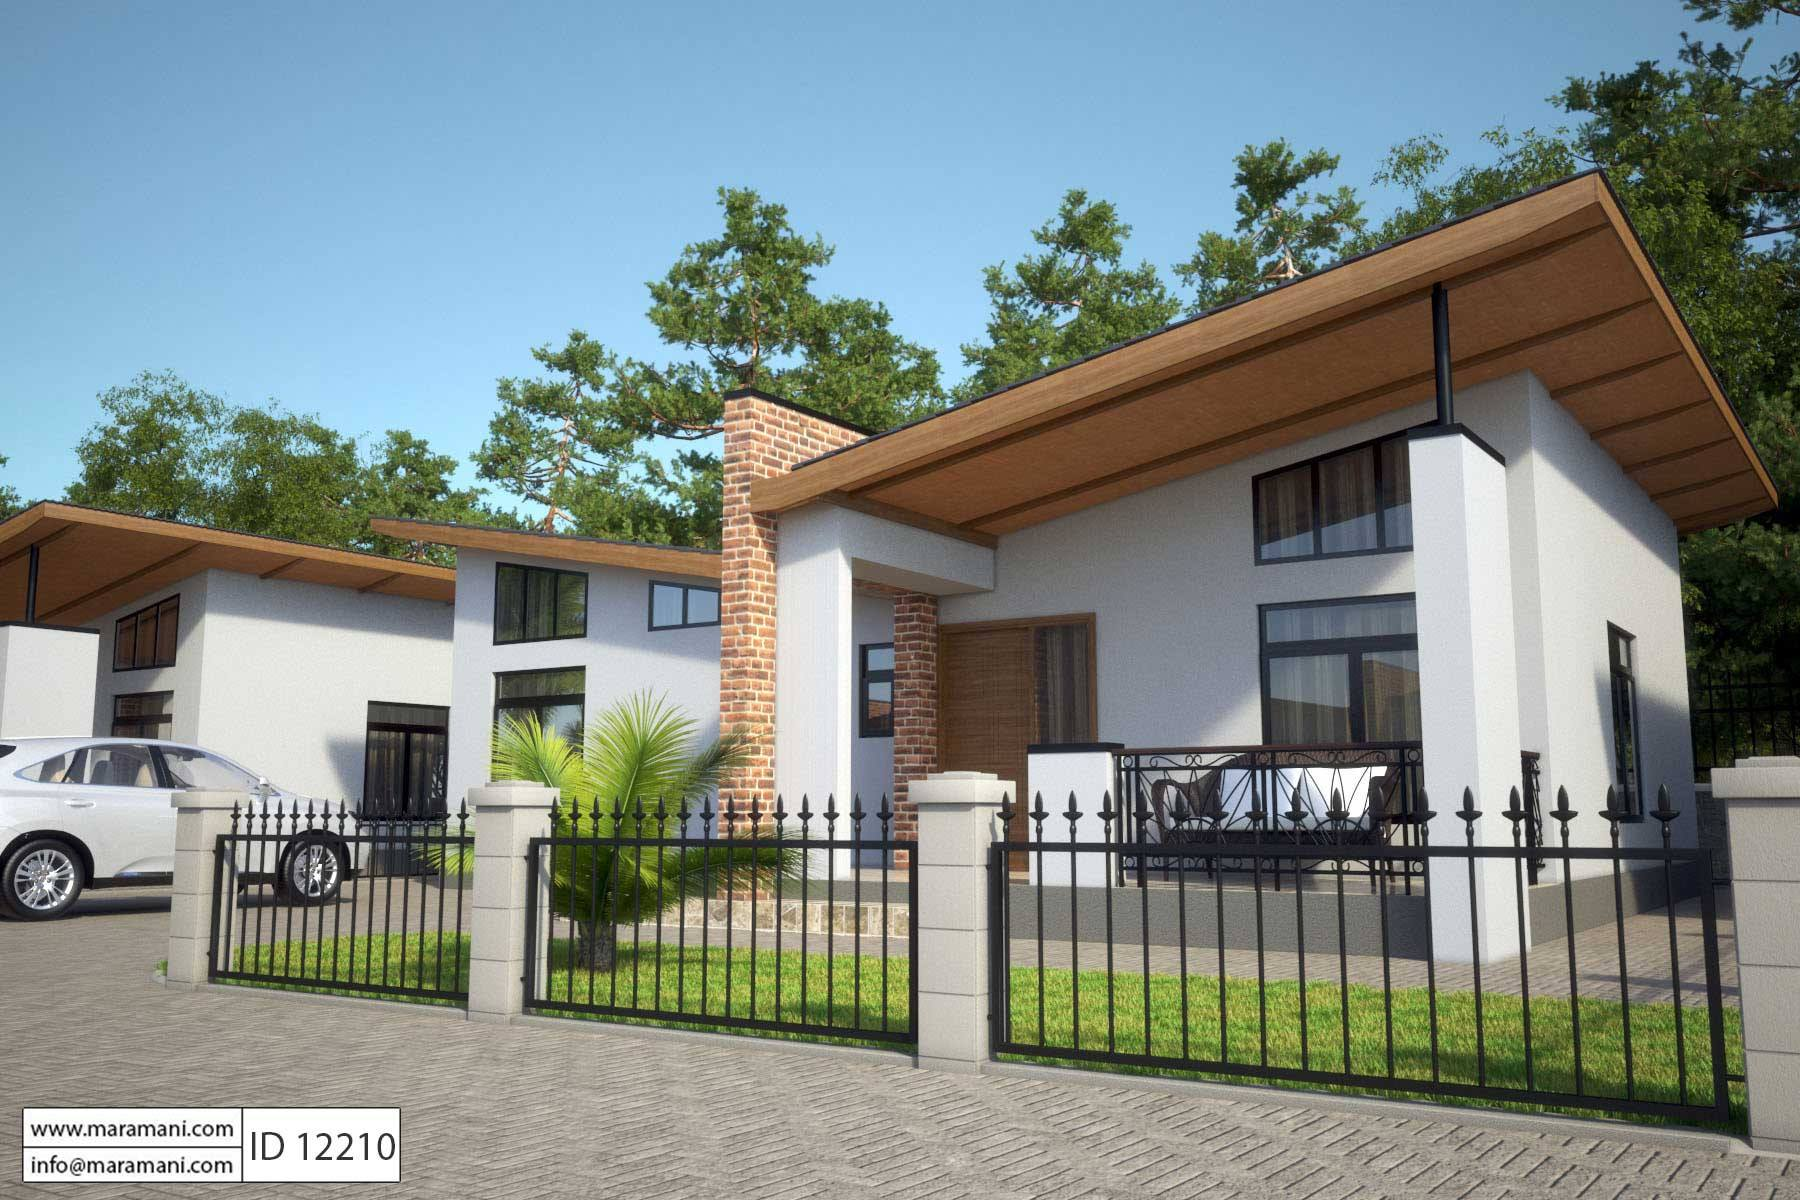 2 bedroom house plan id 12210 house designs by maramani